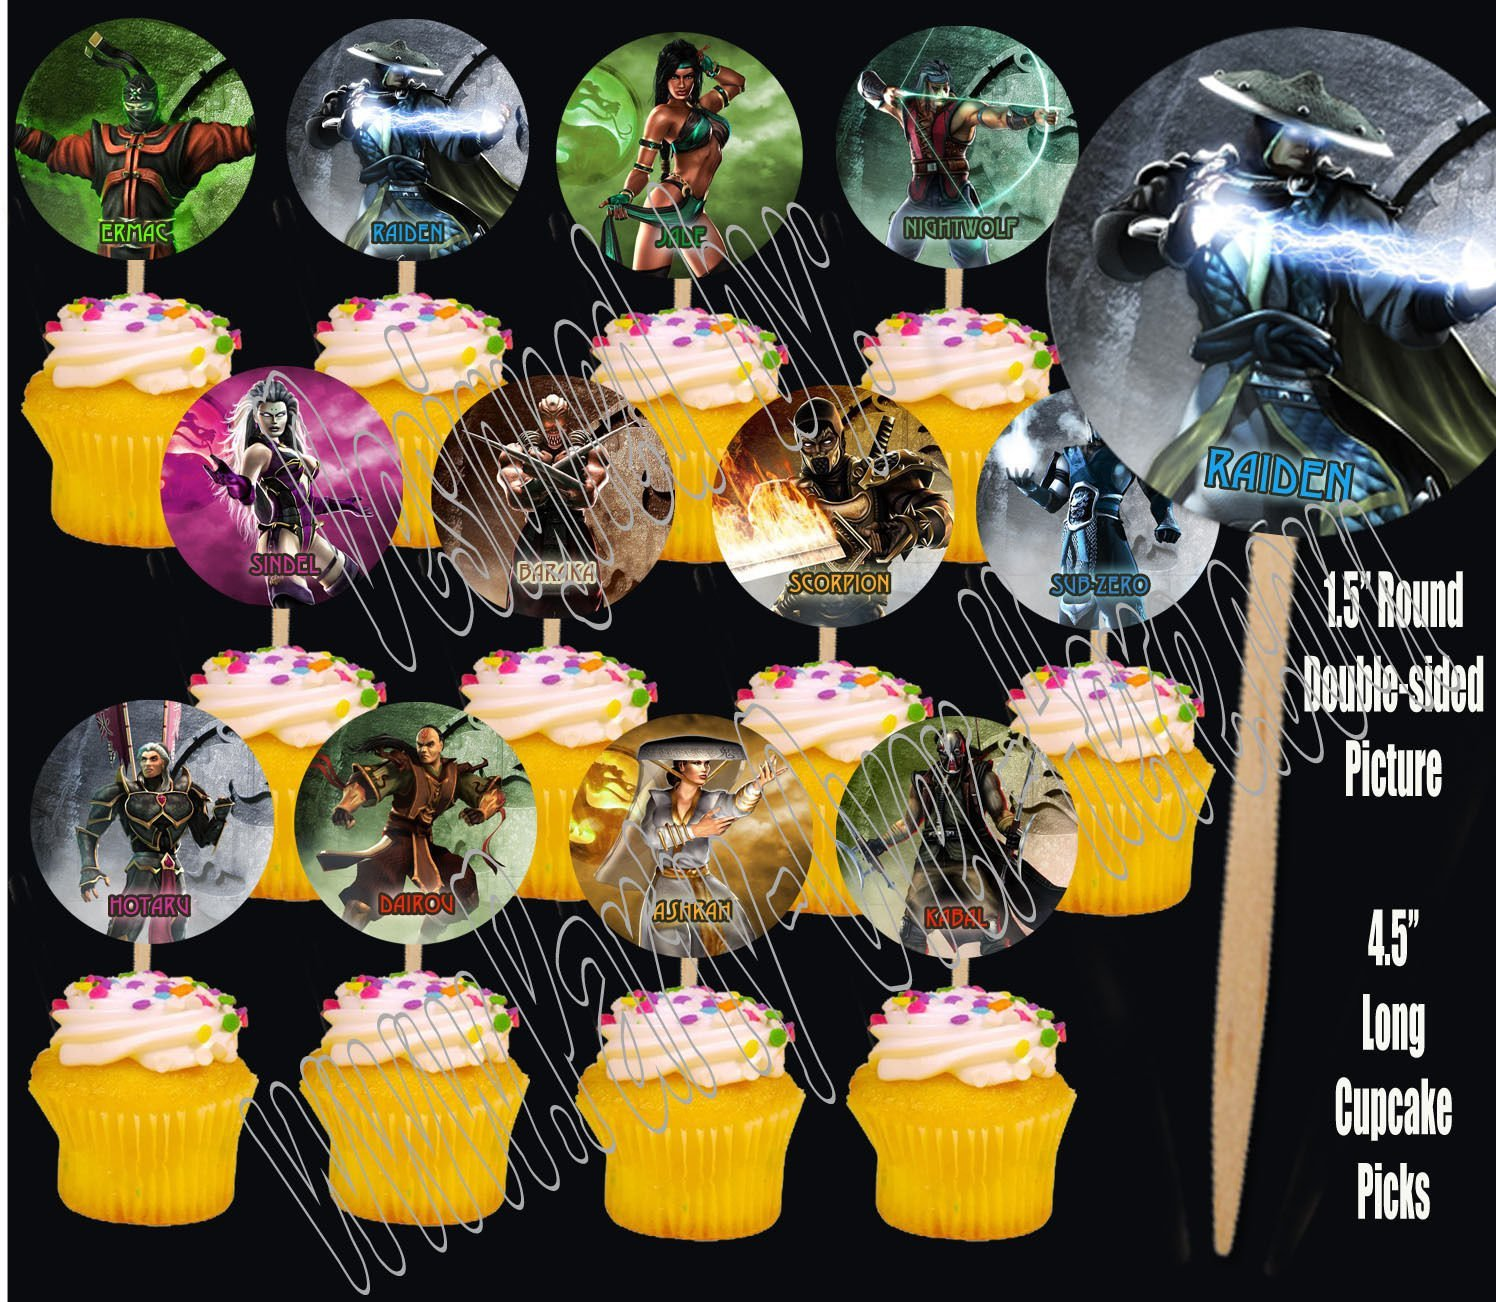 Party Over Here Mortal Kombat Video Game Double-sided Images Cupcake Picks Cake Topper -12 by Party Over Here